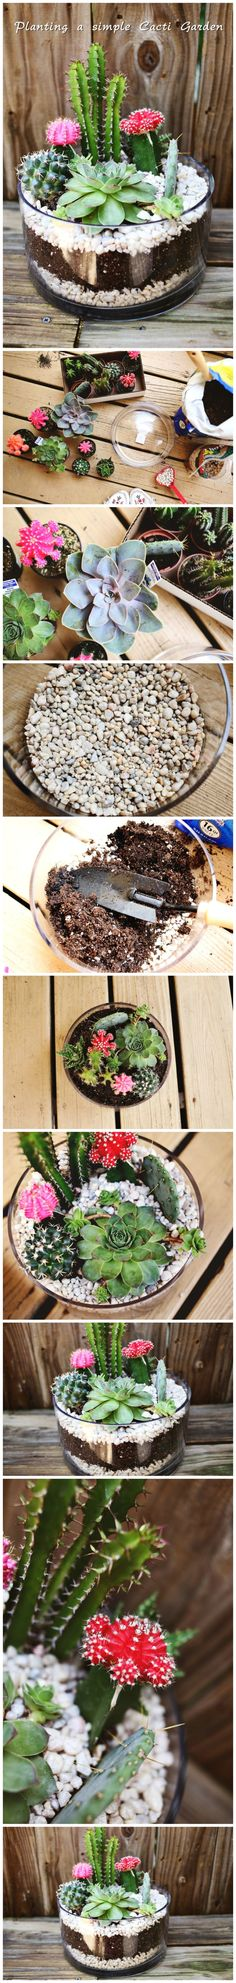 #Planting a #simple Cacti #Garden